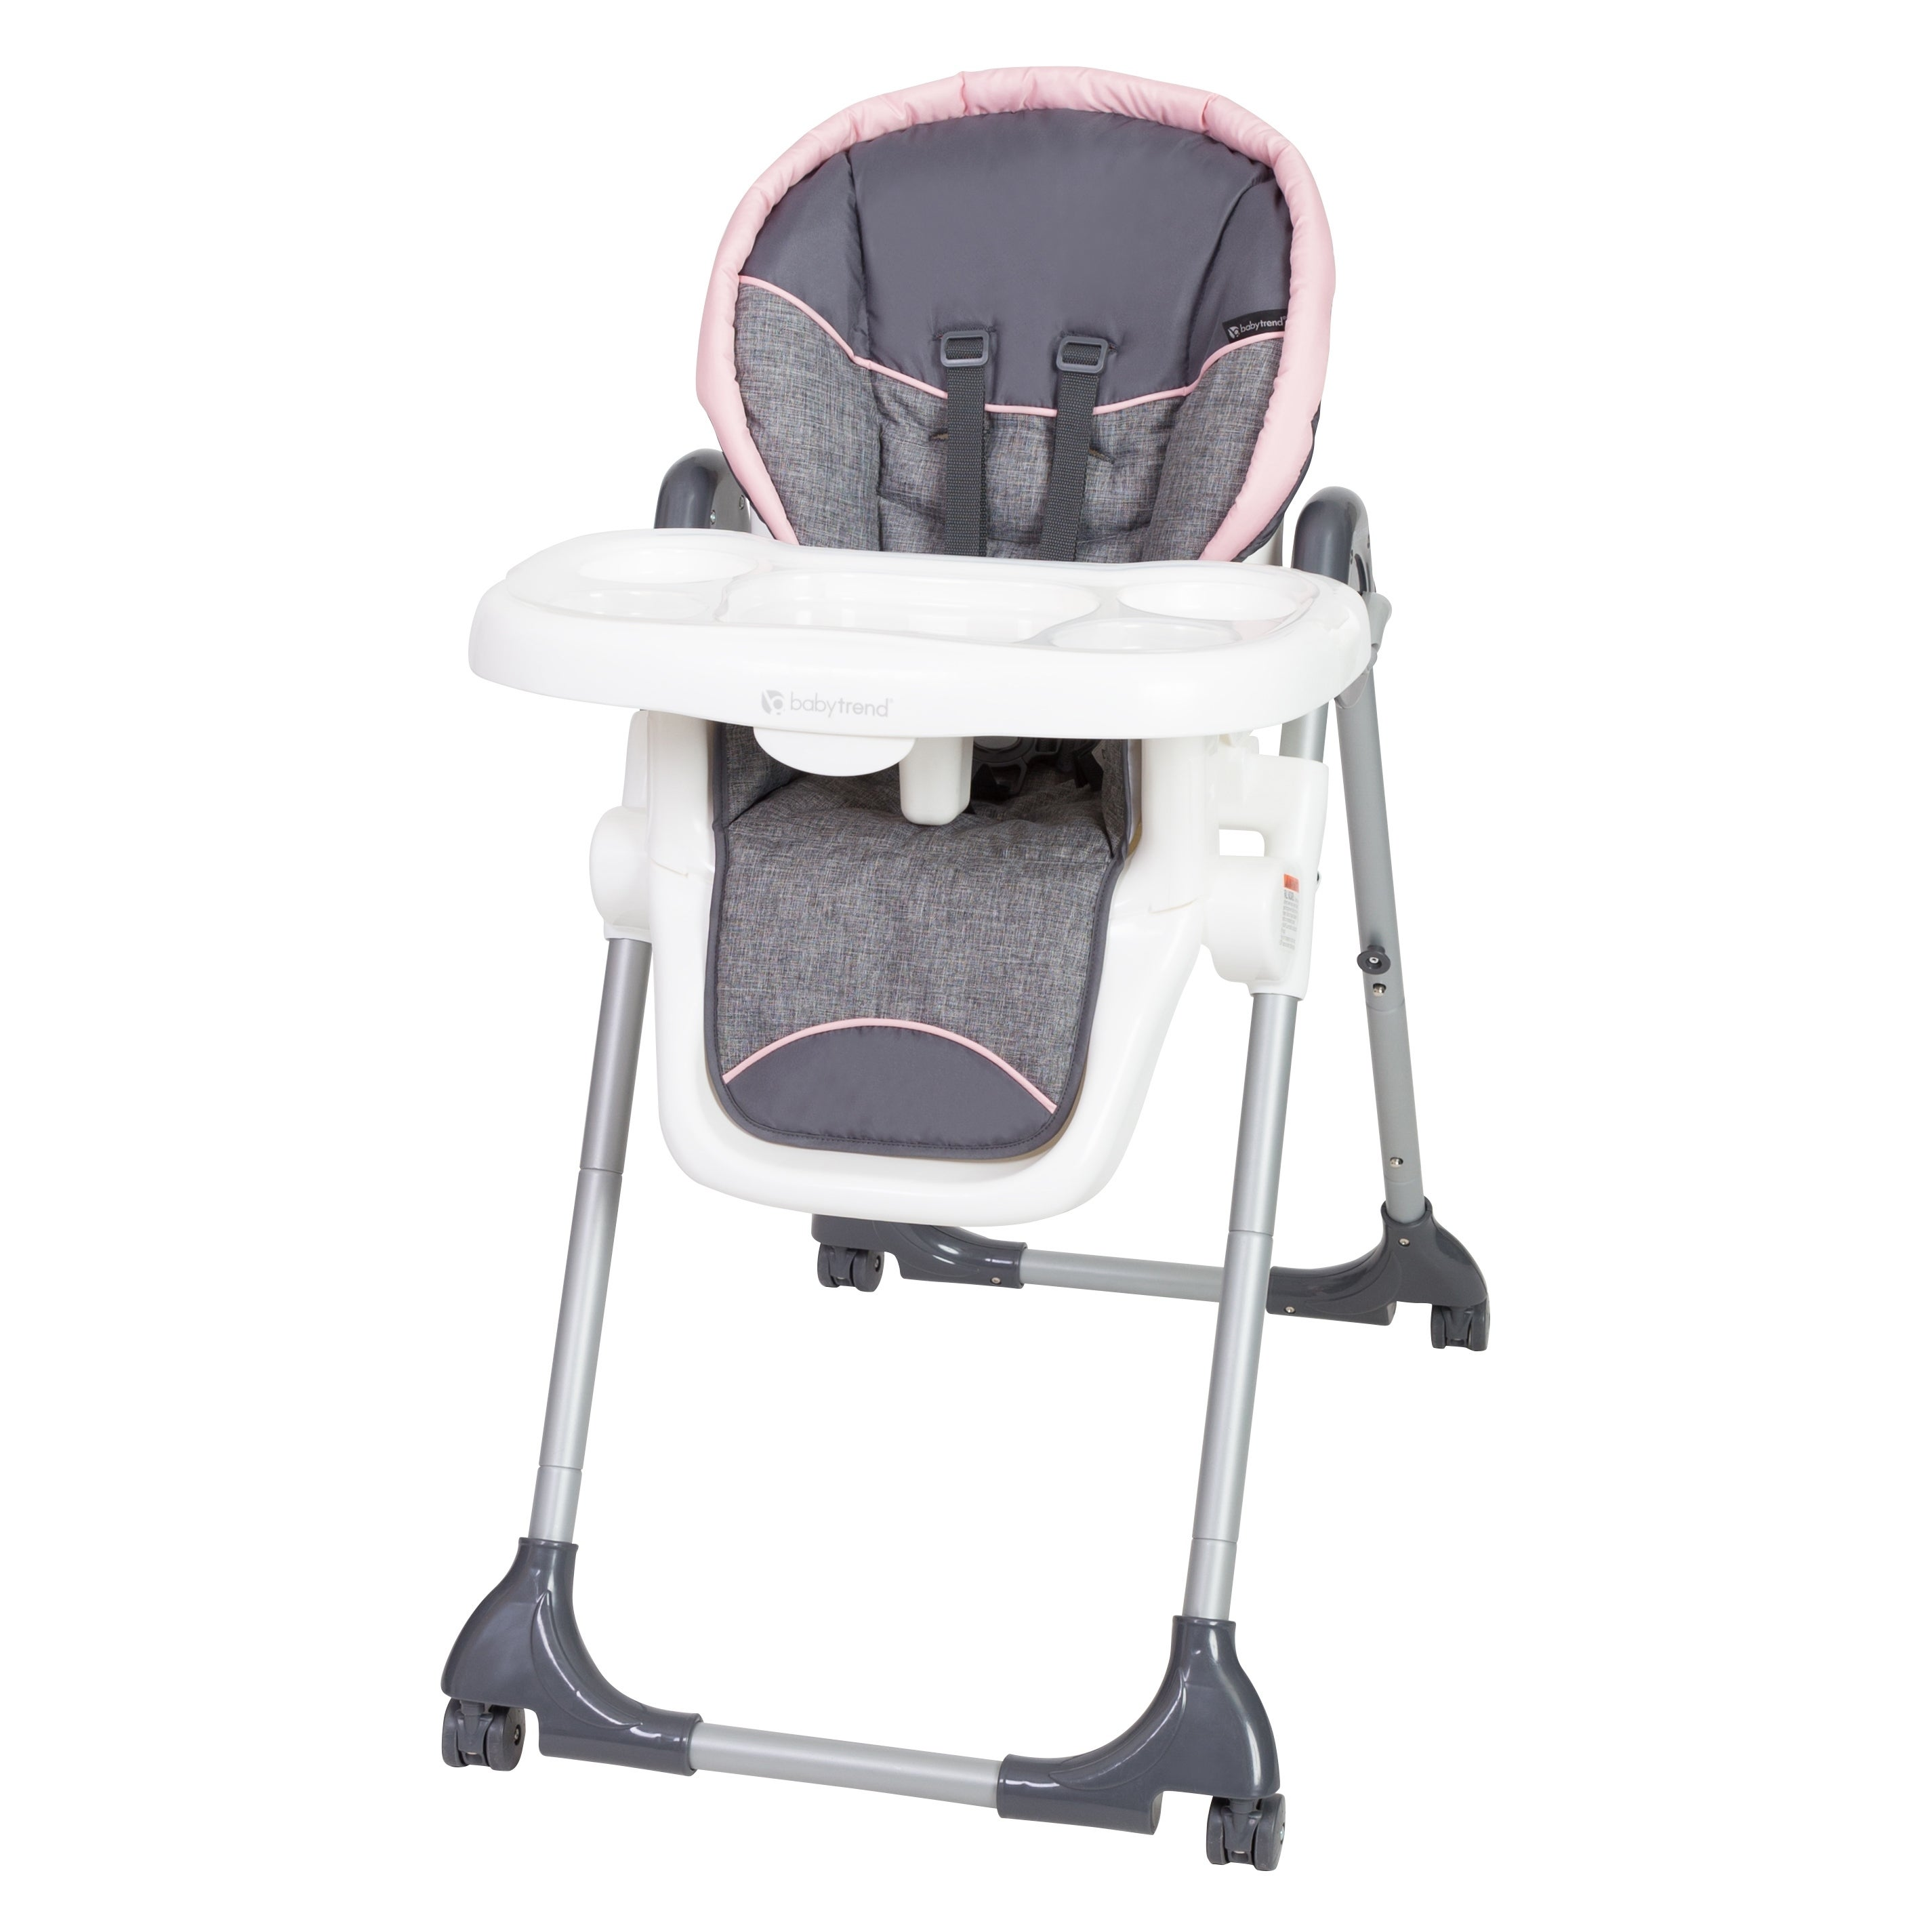 NEW Graco DuoDiner LX Baby High Chair Groove FREE SHIPPING